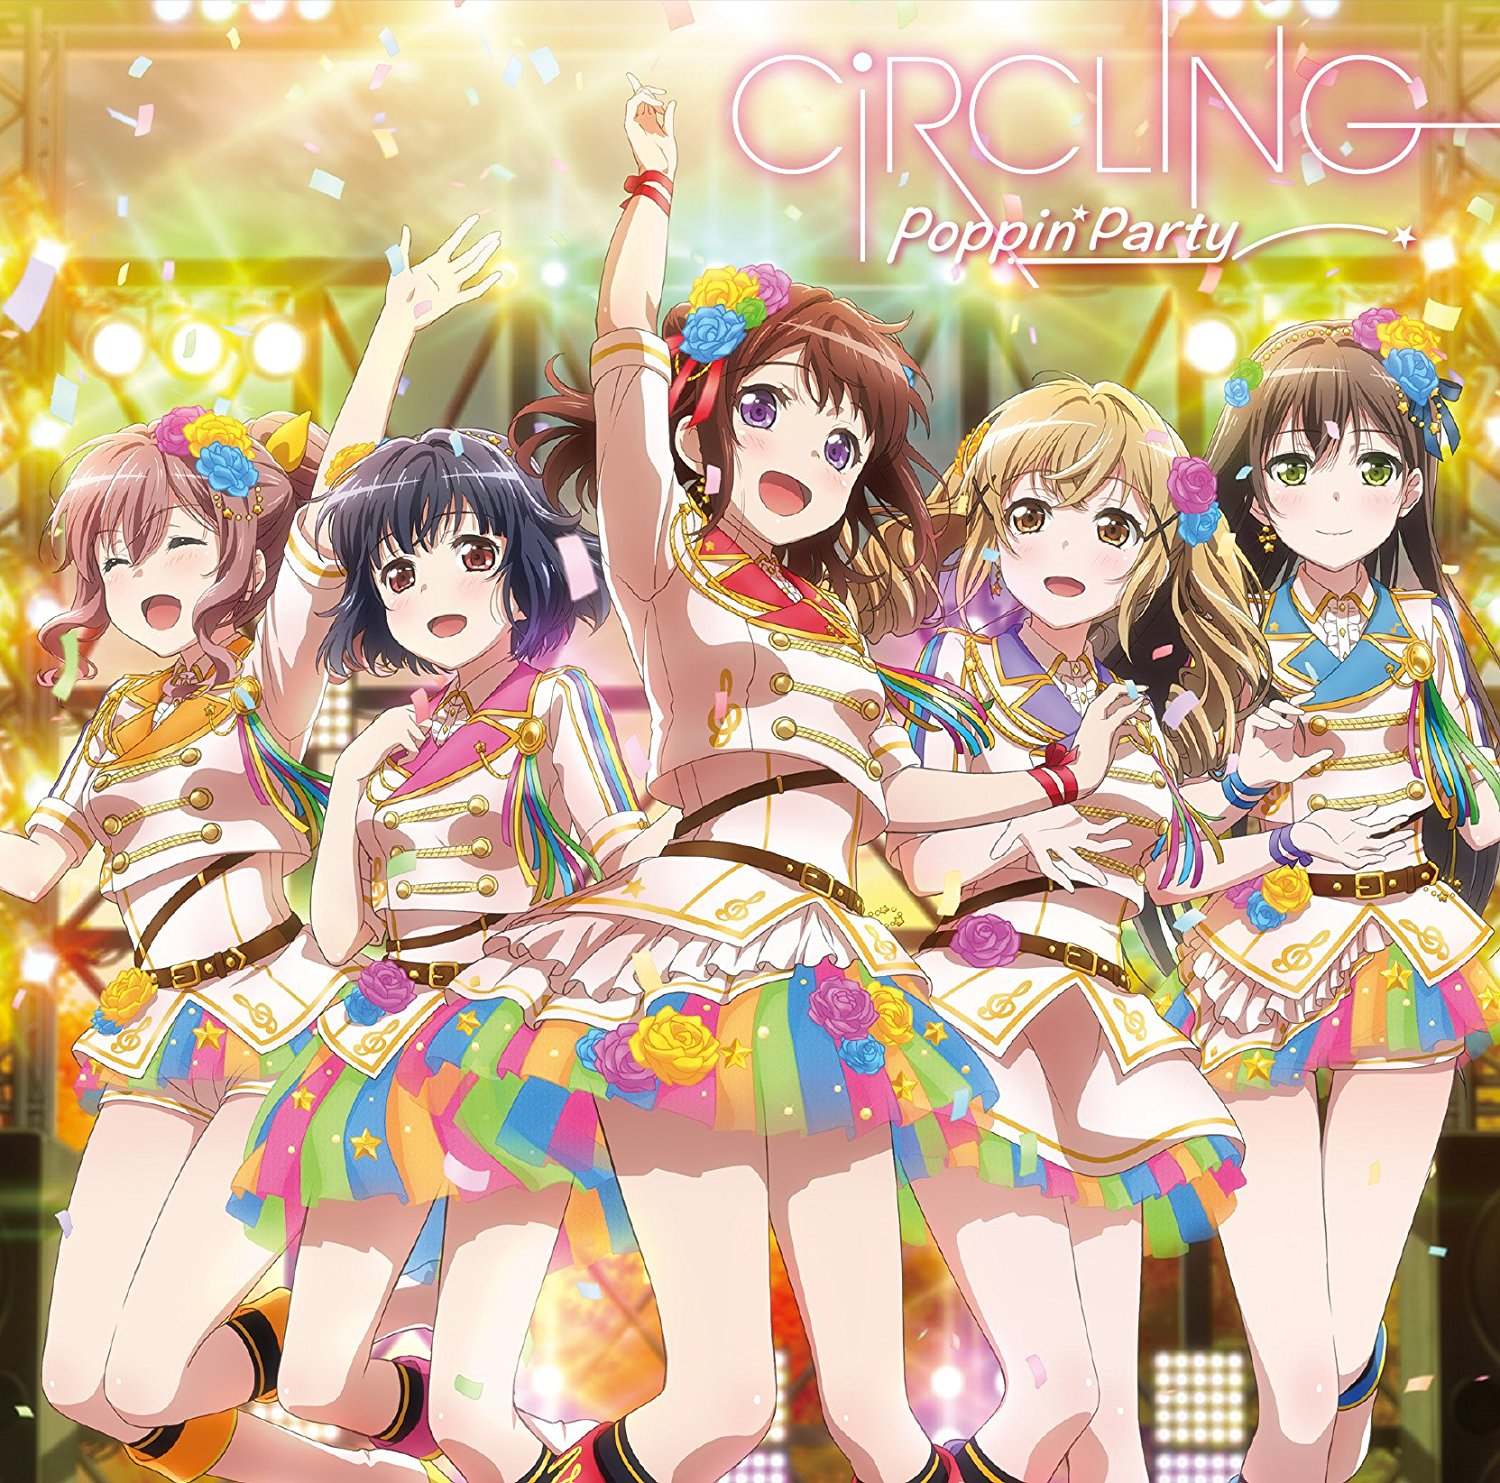 BanG Dream!: Poppin'Party – CiRCLiNG